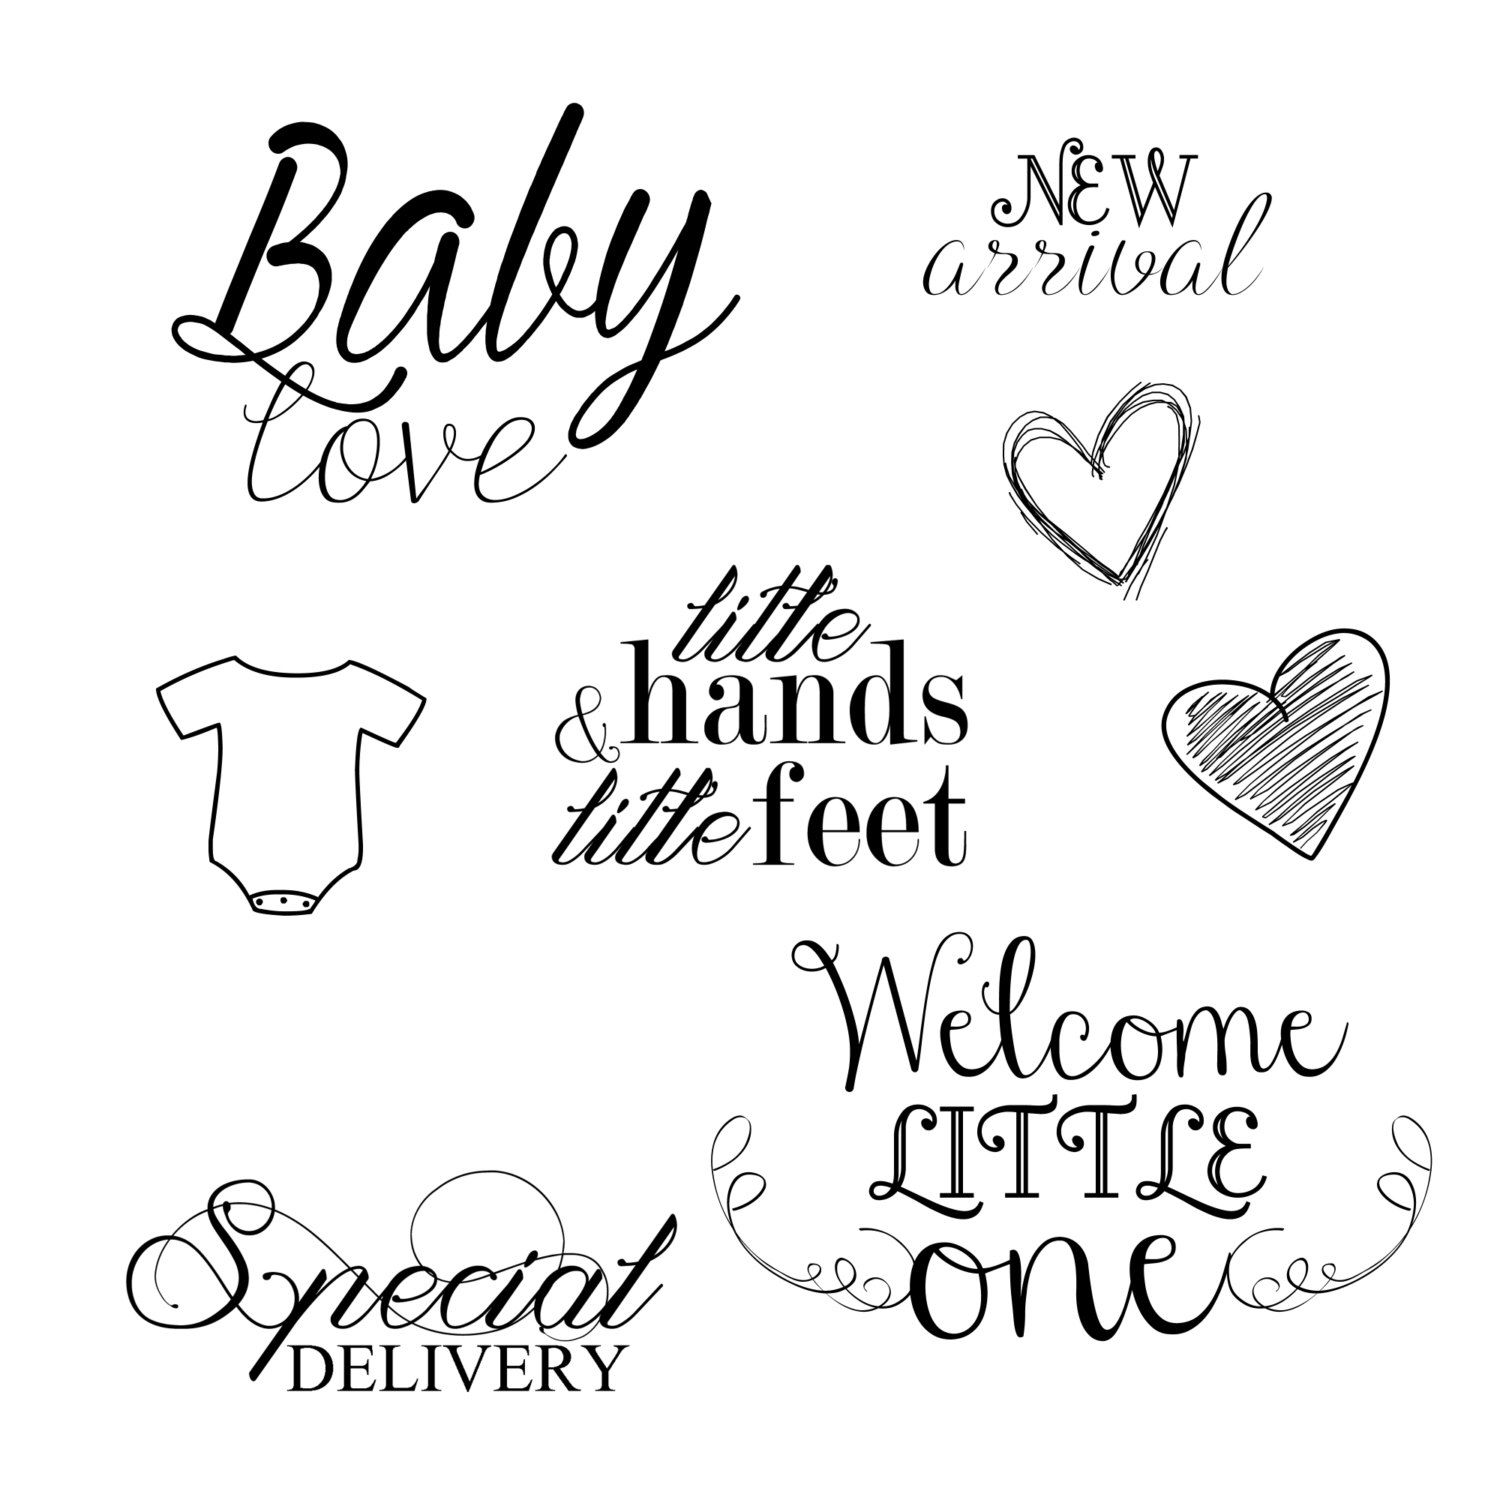 How to scrapbook words - Instant Download Newborn Baby Word Art Overlays For Photography Digital Scrapbooking Card Making Printing And Much More